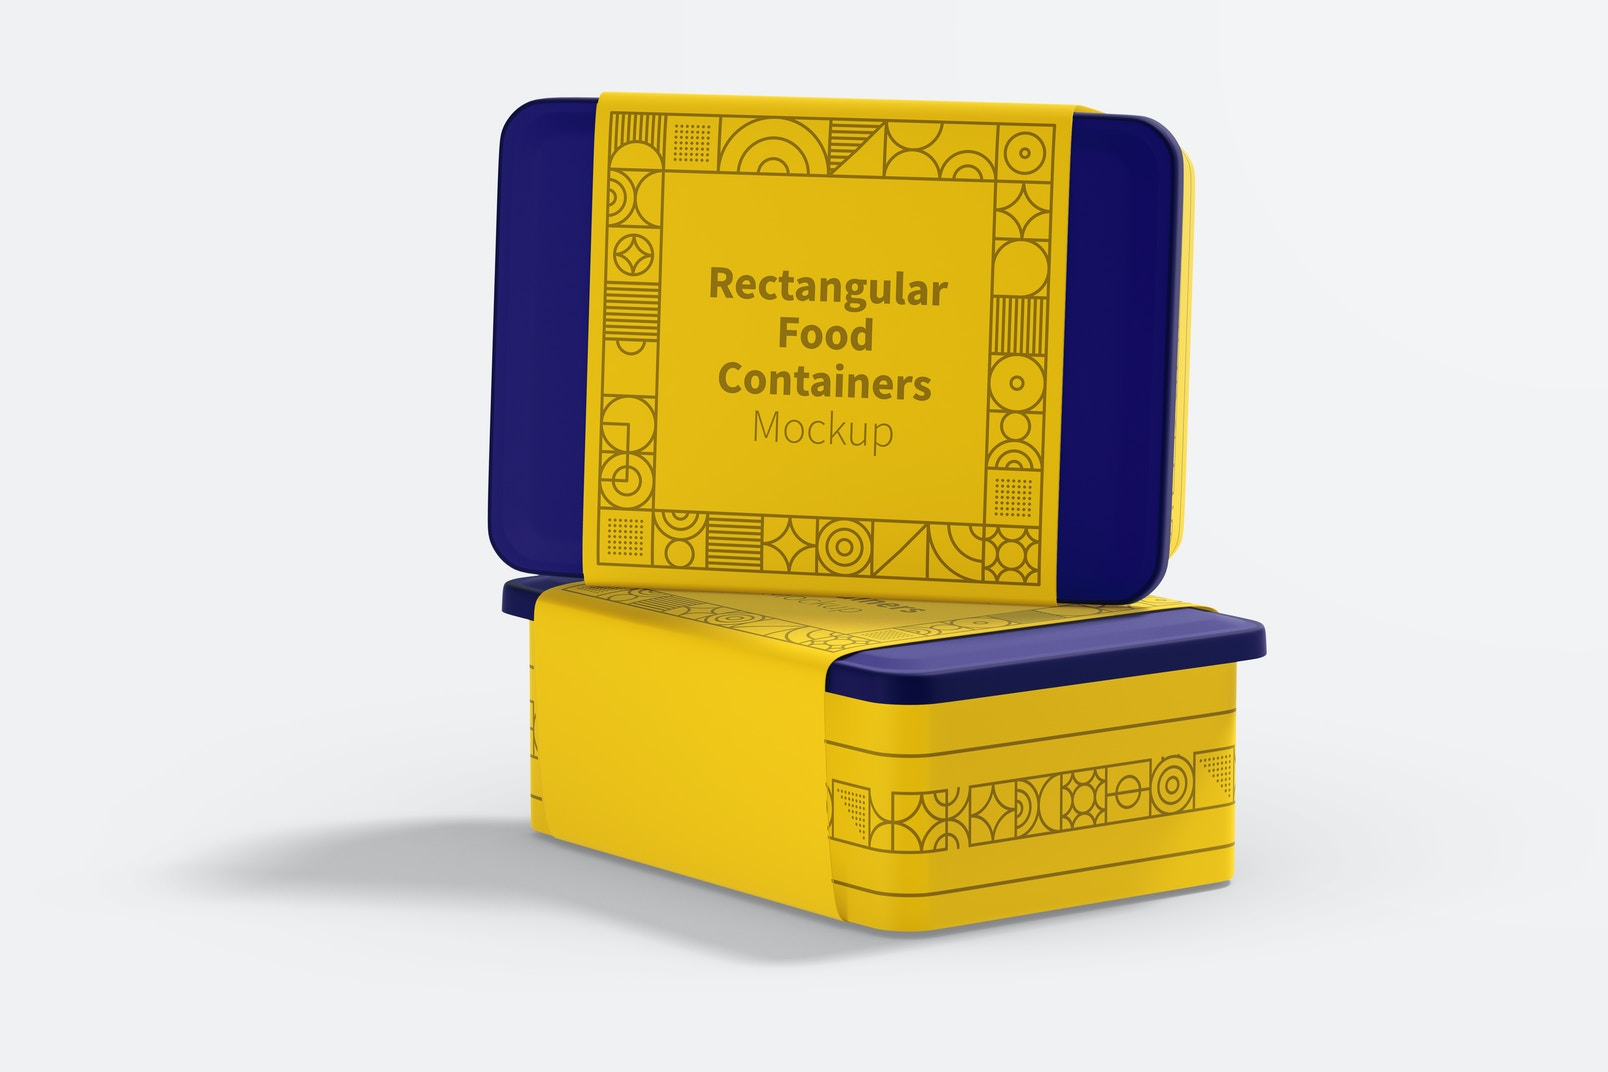 Rectangular Plastic Food Delivery Containers Mockup, Right View